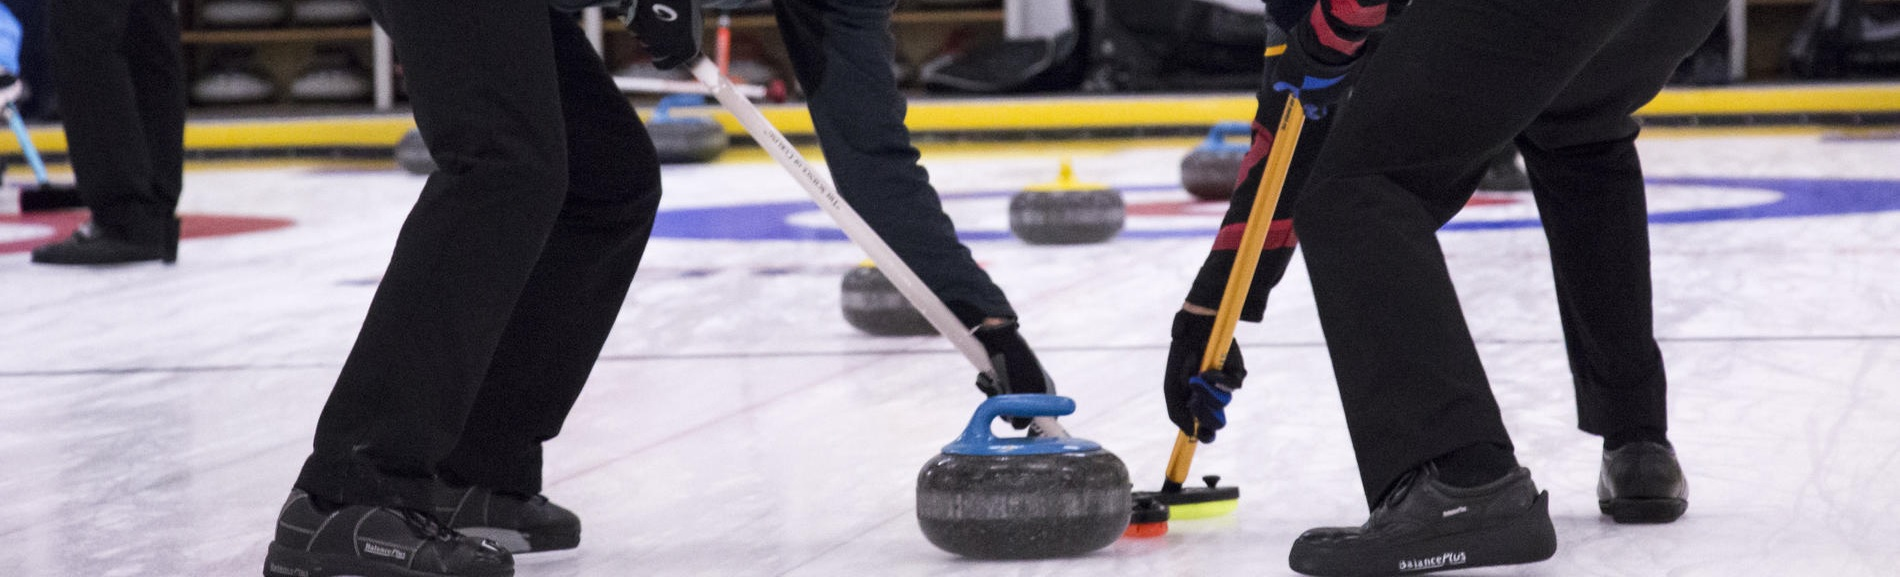 men curling team at sarnia golf & curling club